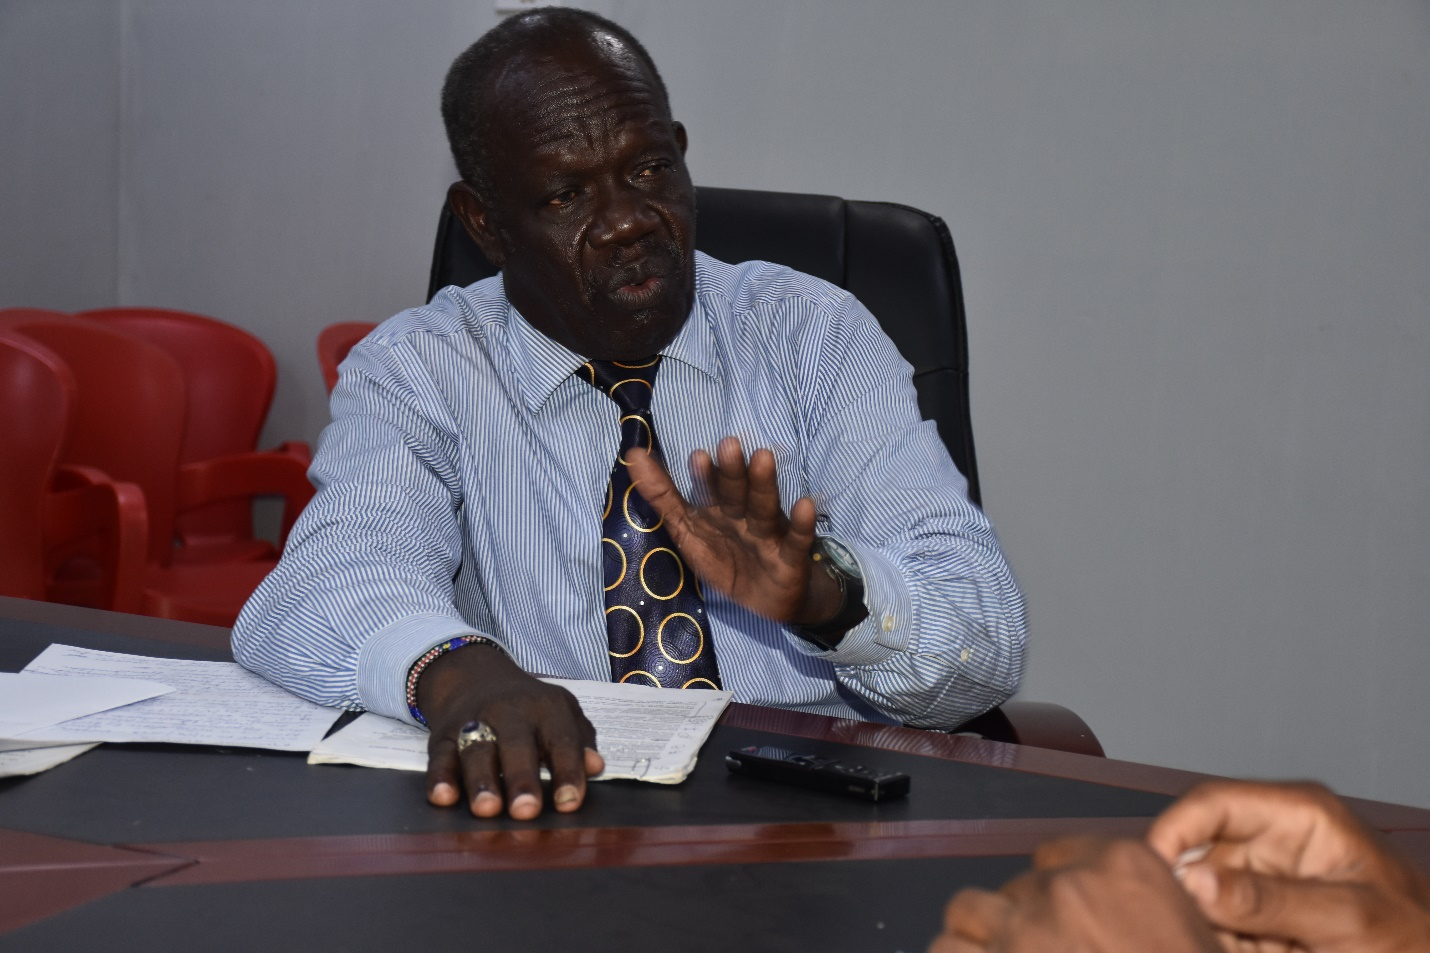 Inject oil money in agriculture to spur growth, gov't told